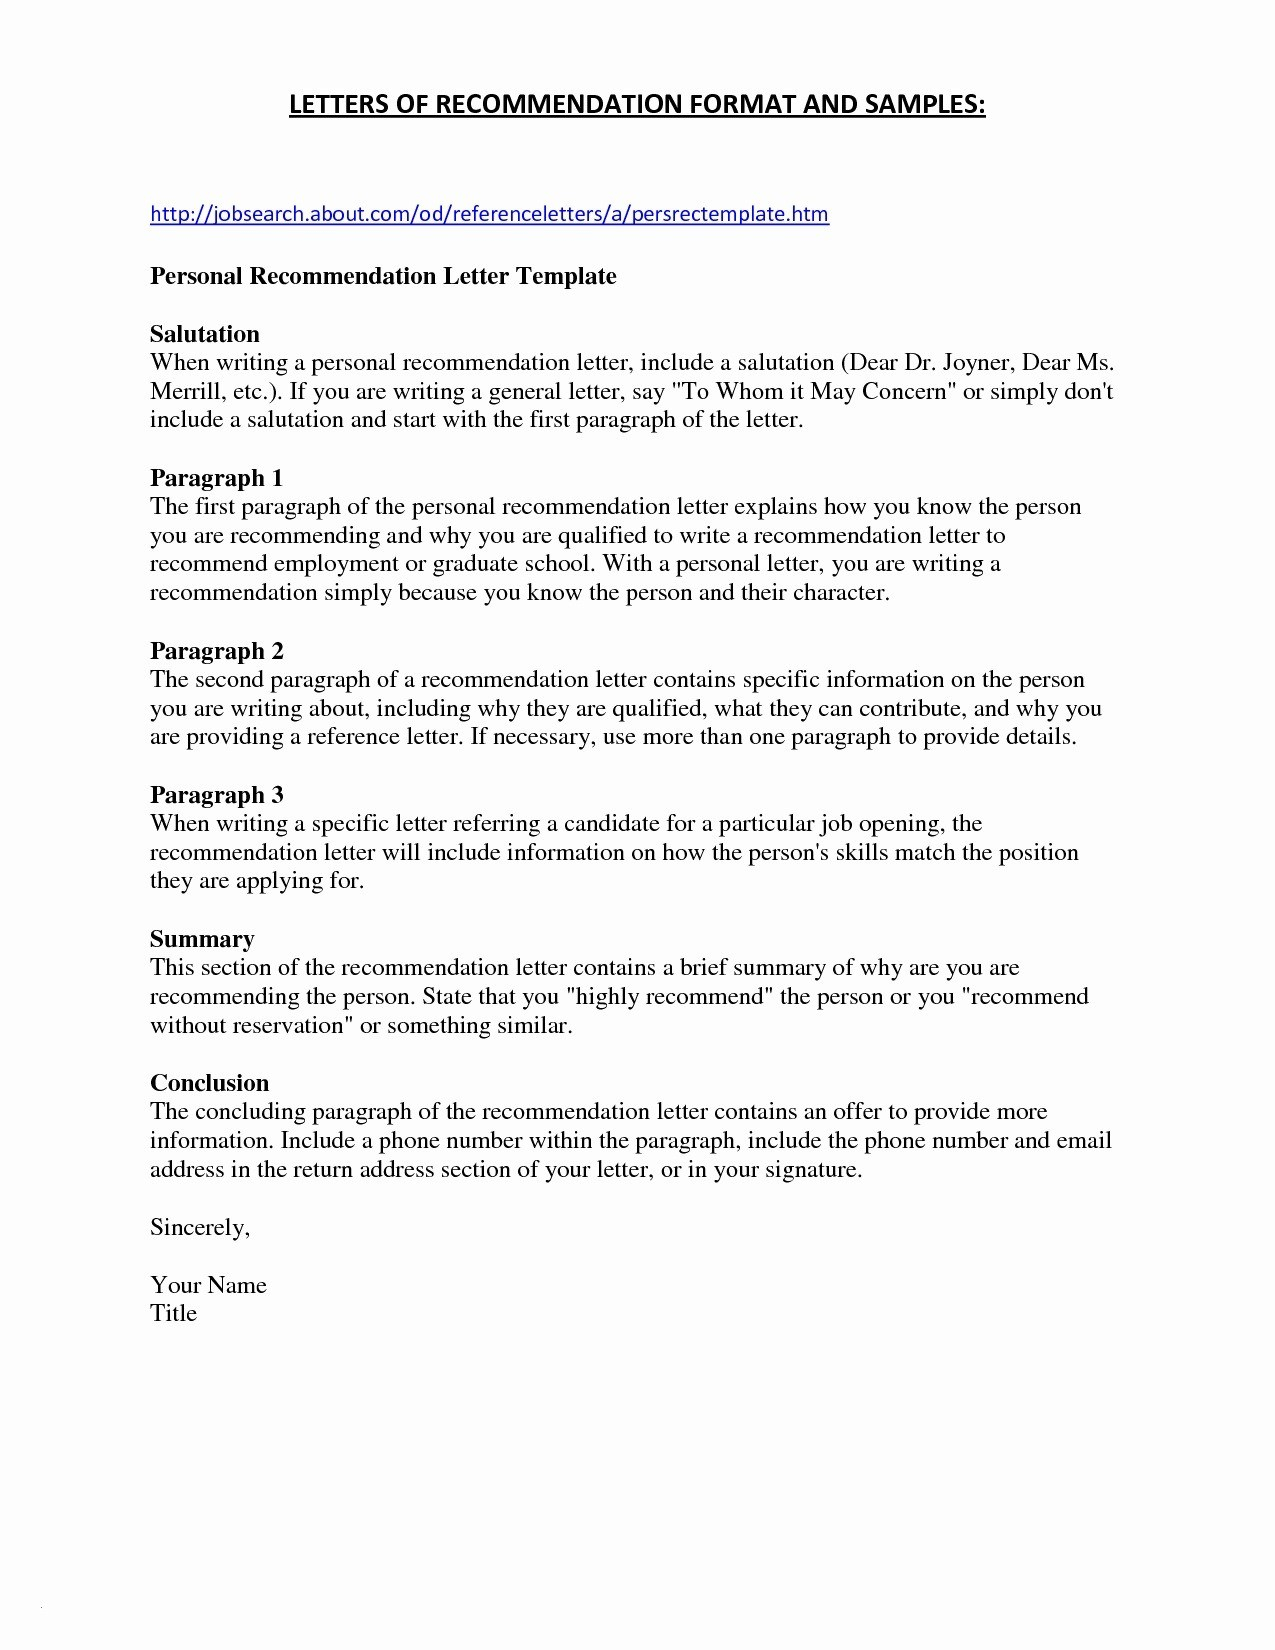 Letter Of Recommendation Template Word - Job Re Mendation Letter Best Bination Resume formats Unique Resume